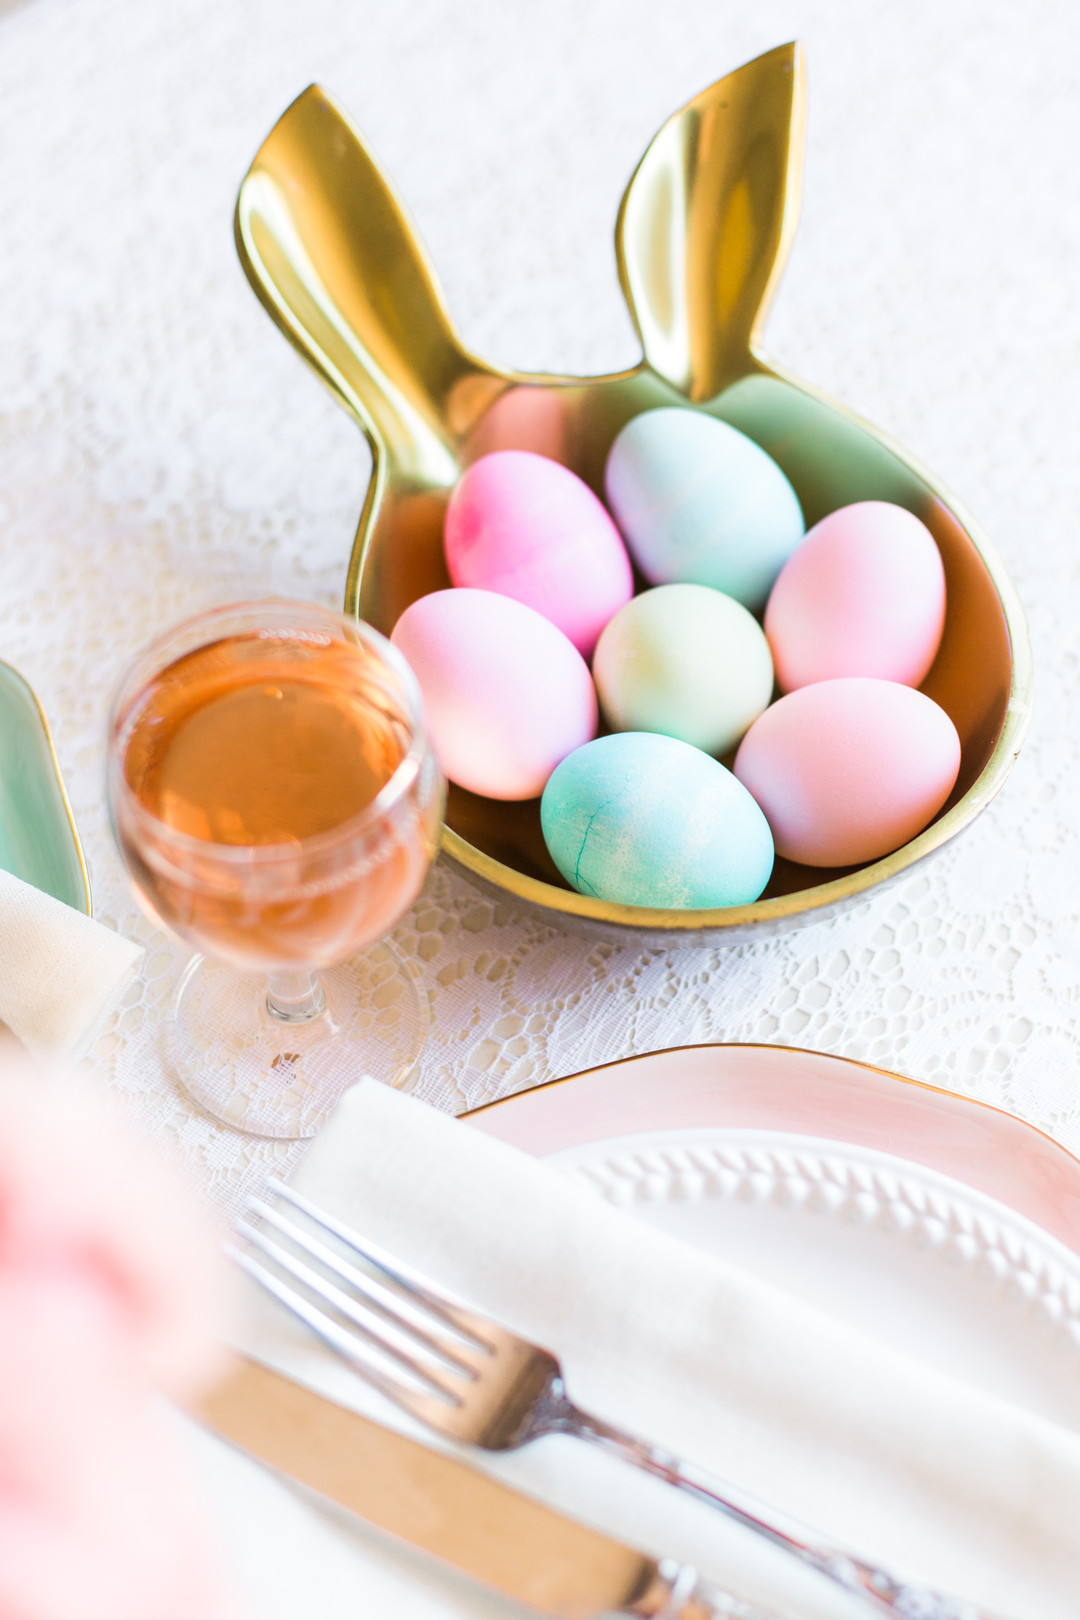 Staal_KristinaStaalPhotography_KristinaStaalPhotographyEasterTablescape201627_big Easy Entertaining: Easter Brunch Inspiration for Two